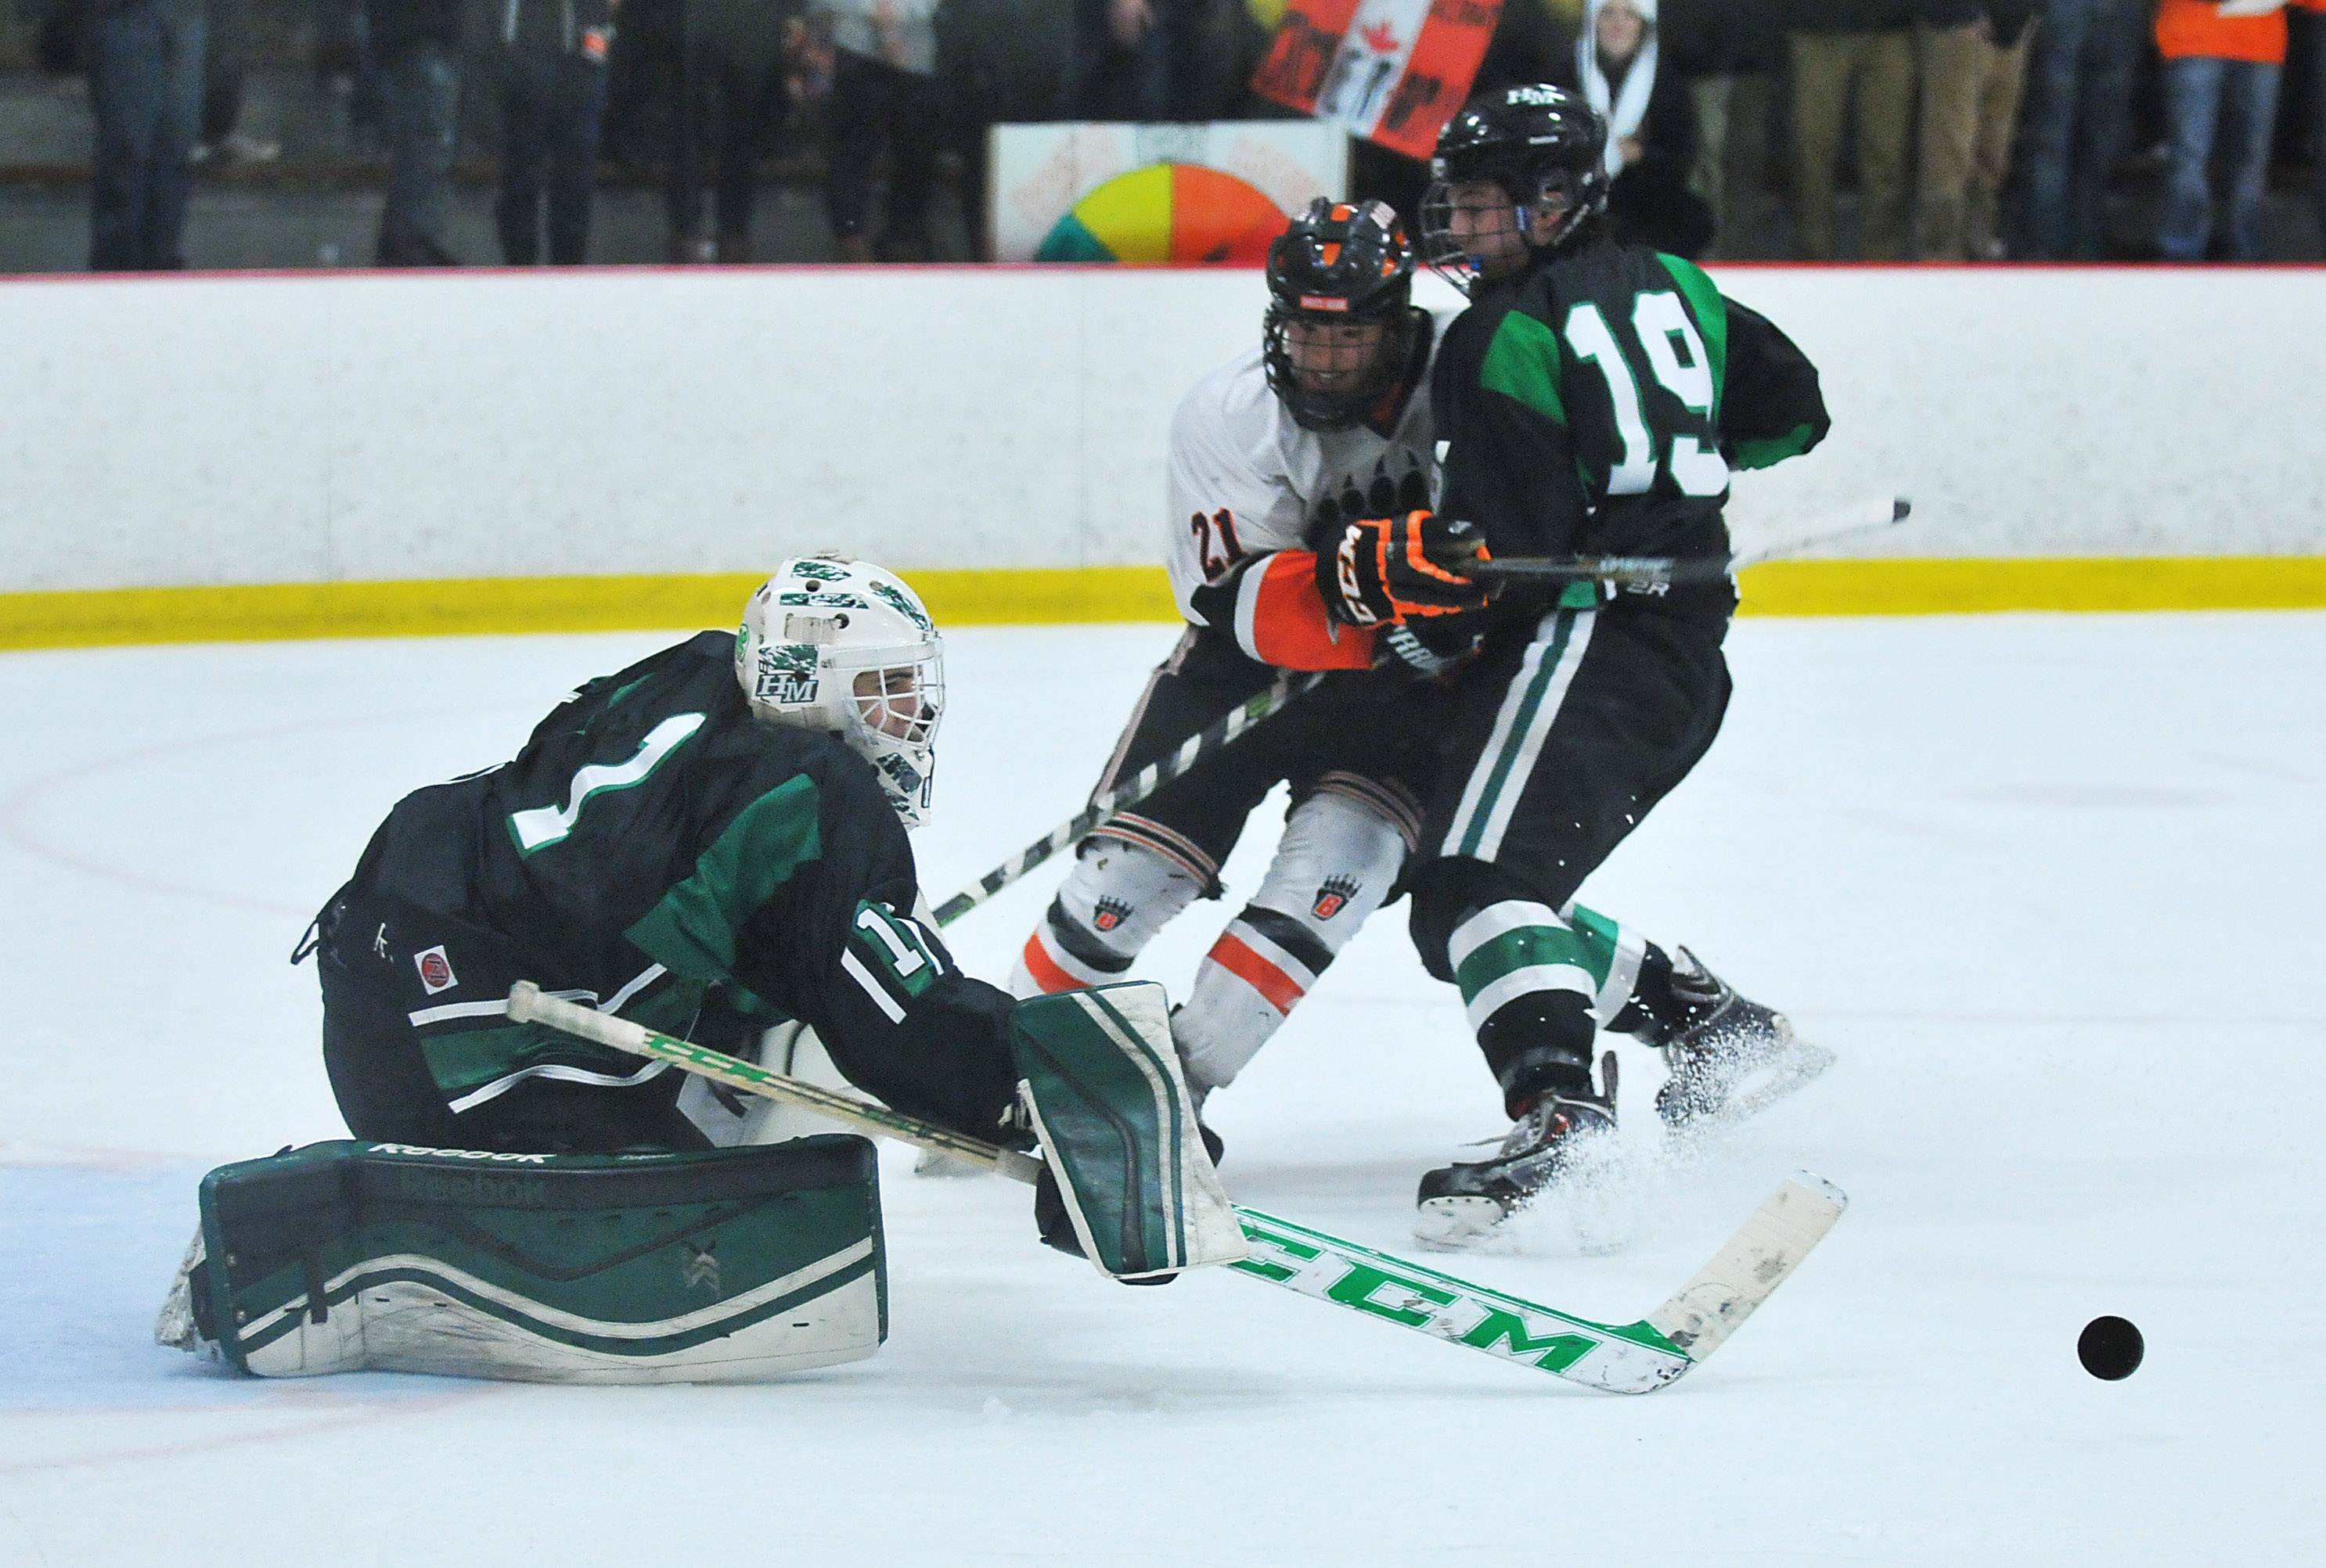 MN H.S.: Begley Proves Formidable As Hill-Murray Defeats Rival White Bear Lake